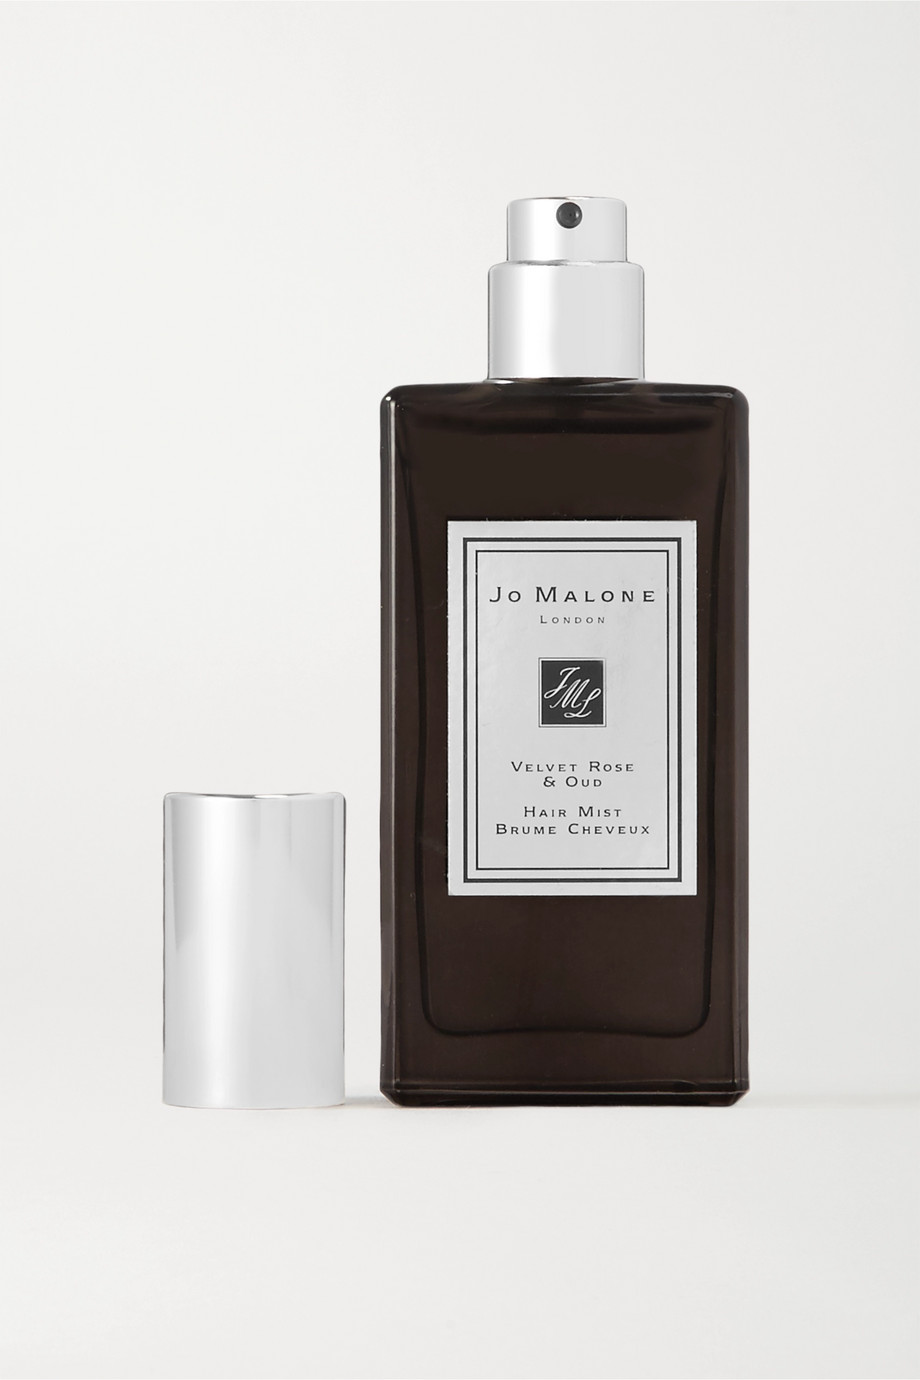 Jo Malone London Velvet Rose & Oud Hair Mist, 30ml